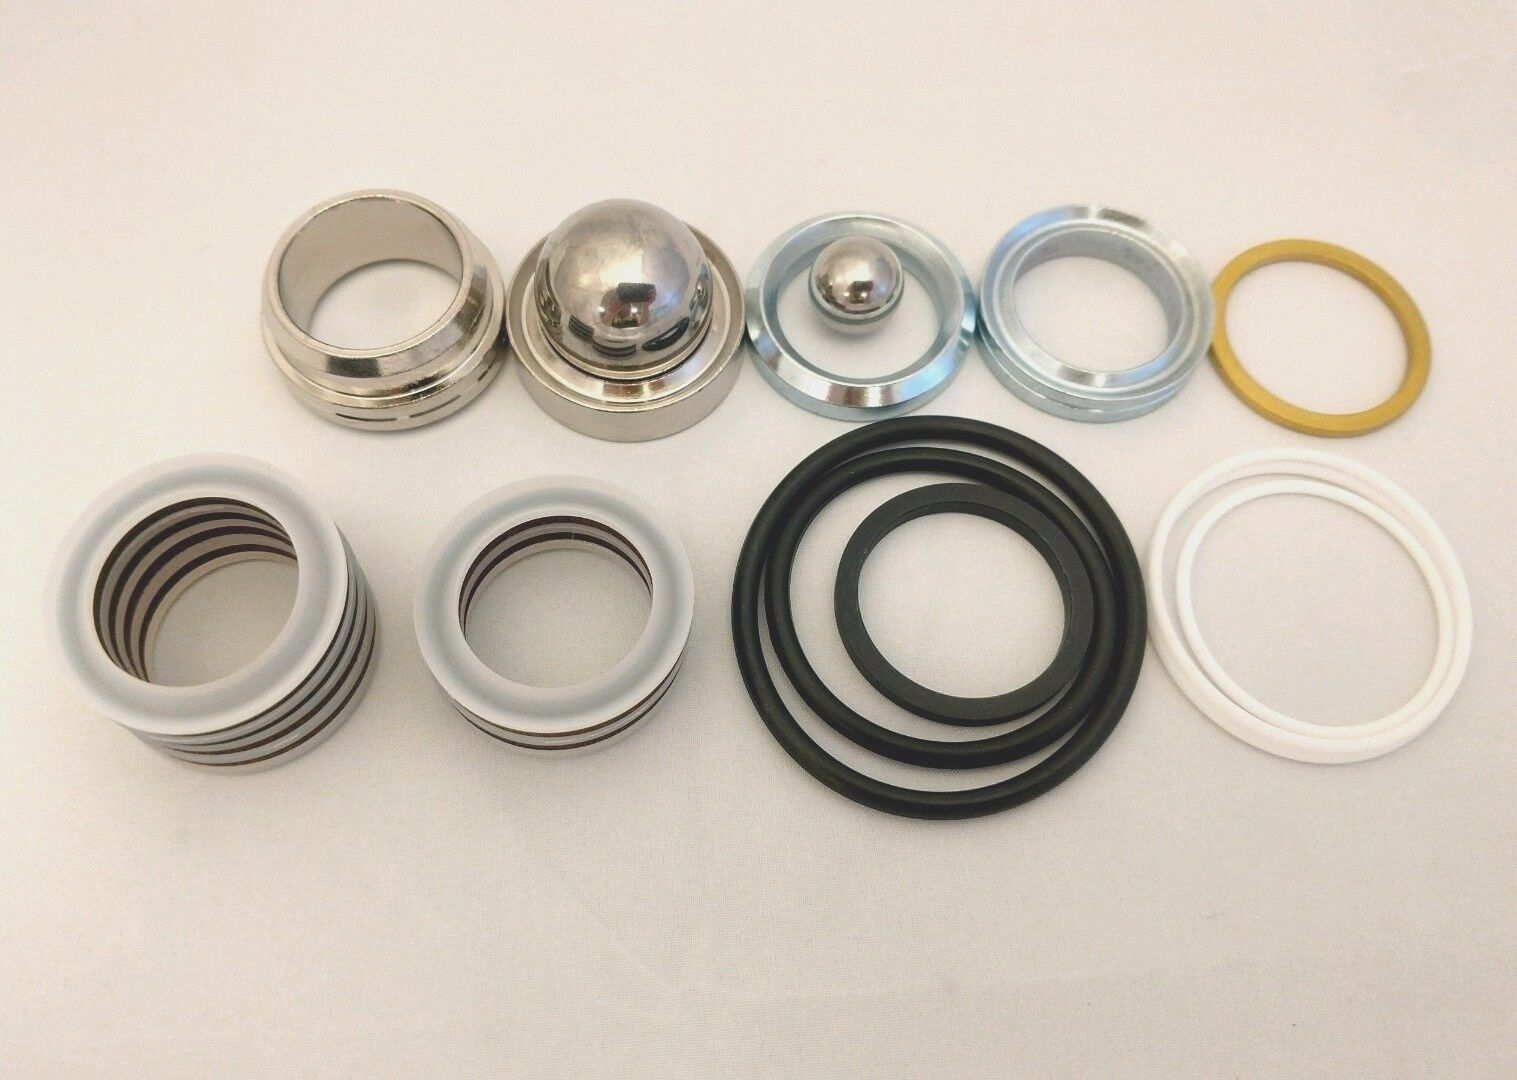 Made in the USA Gmax 7900 repair kit. Replaces Graco 246341 or 246-341